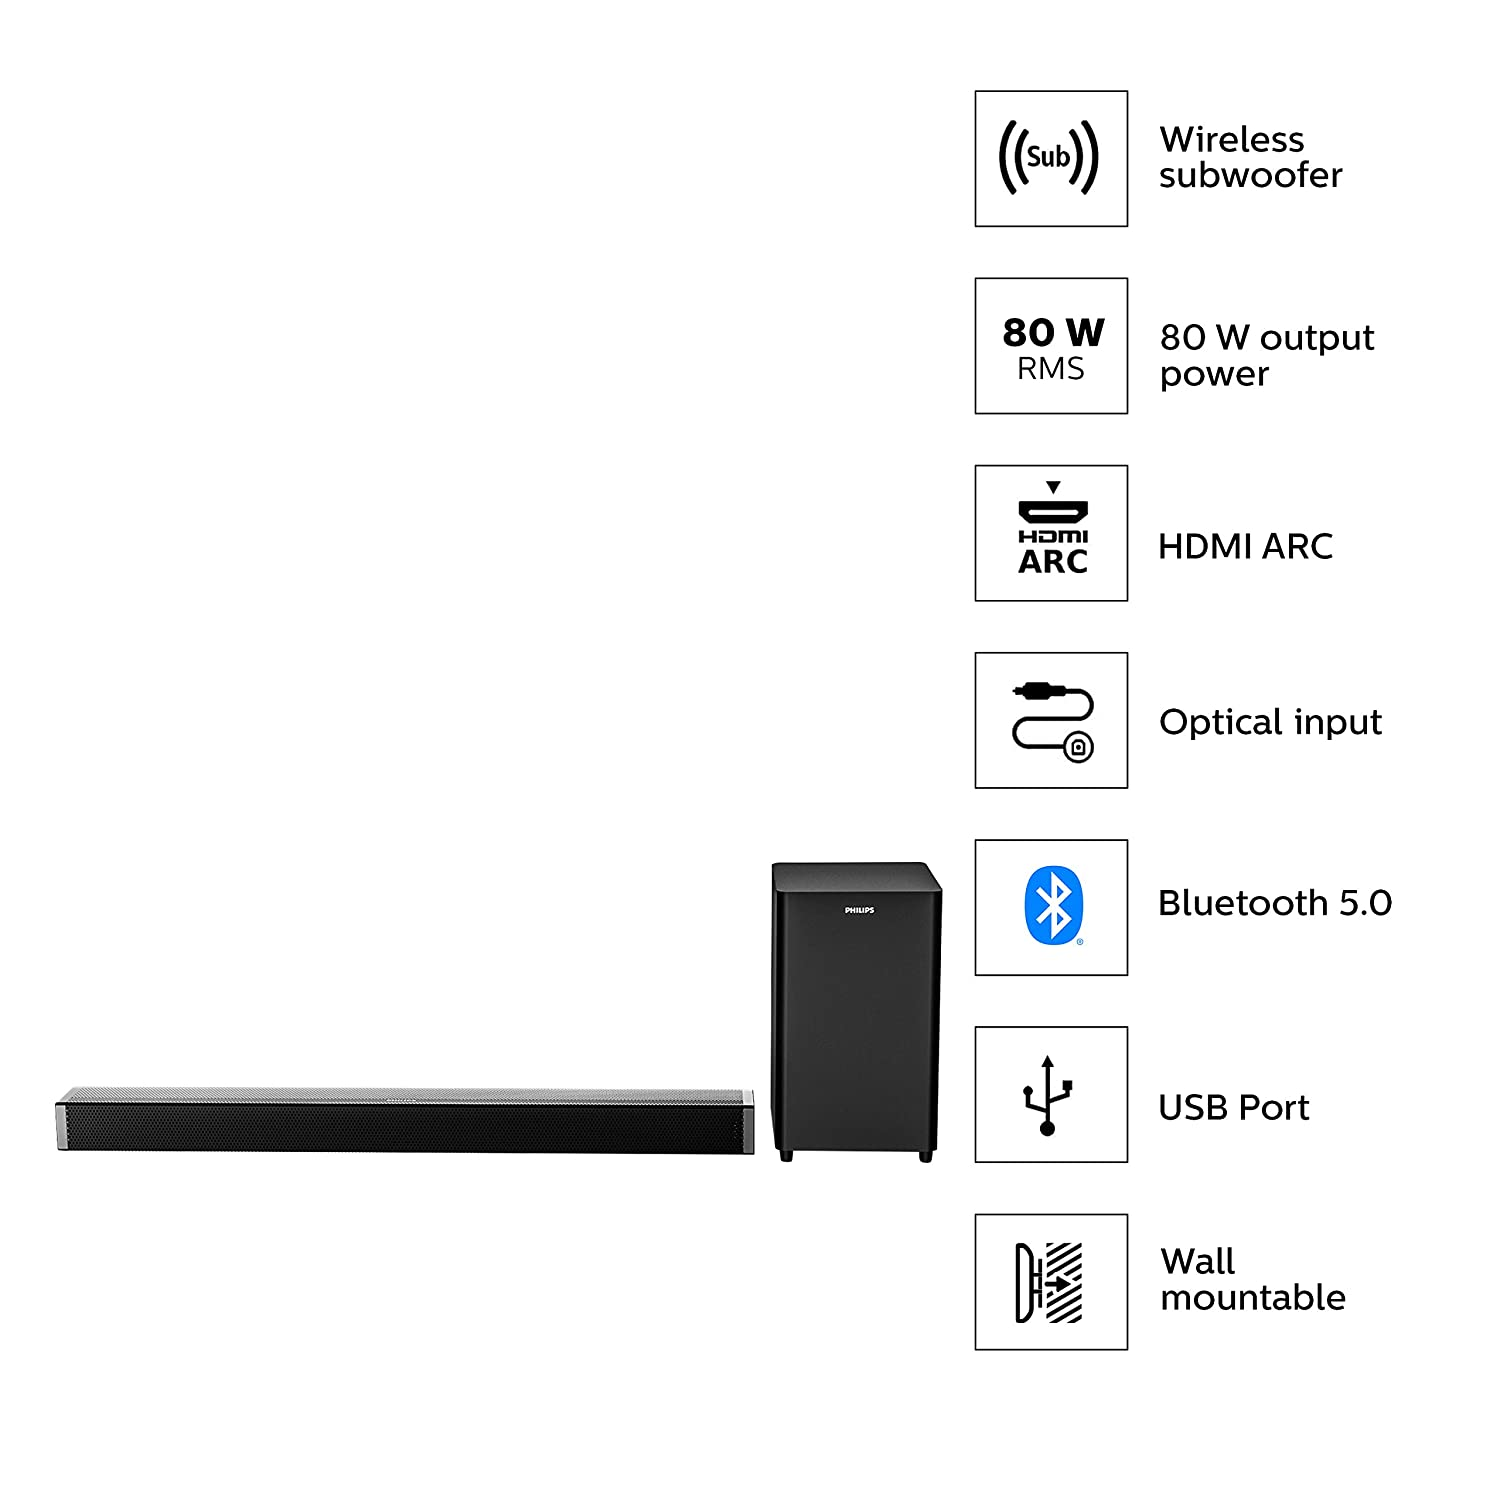 Philips 4000 Series HTL4080 80W Bluetooth Soundbar with Wireless Subwoofer, HDMi ARC, Bluetooth 5.0,Optical in and USB